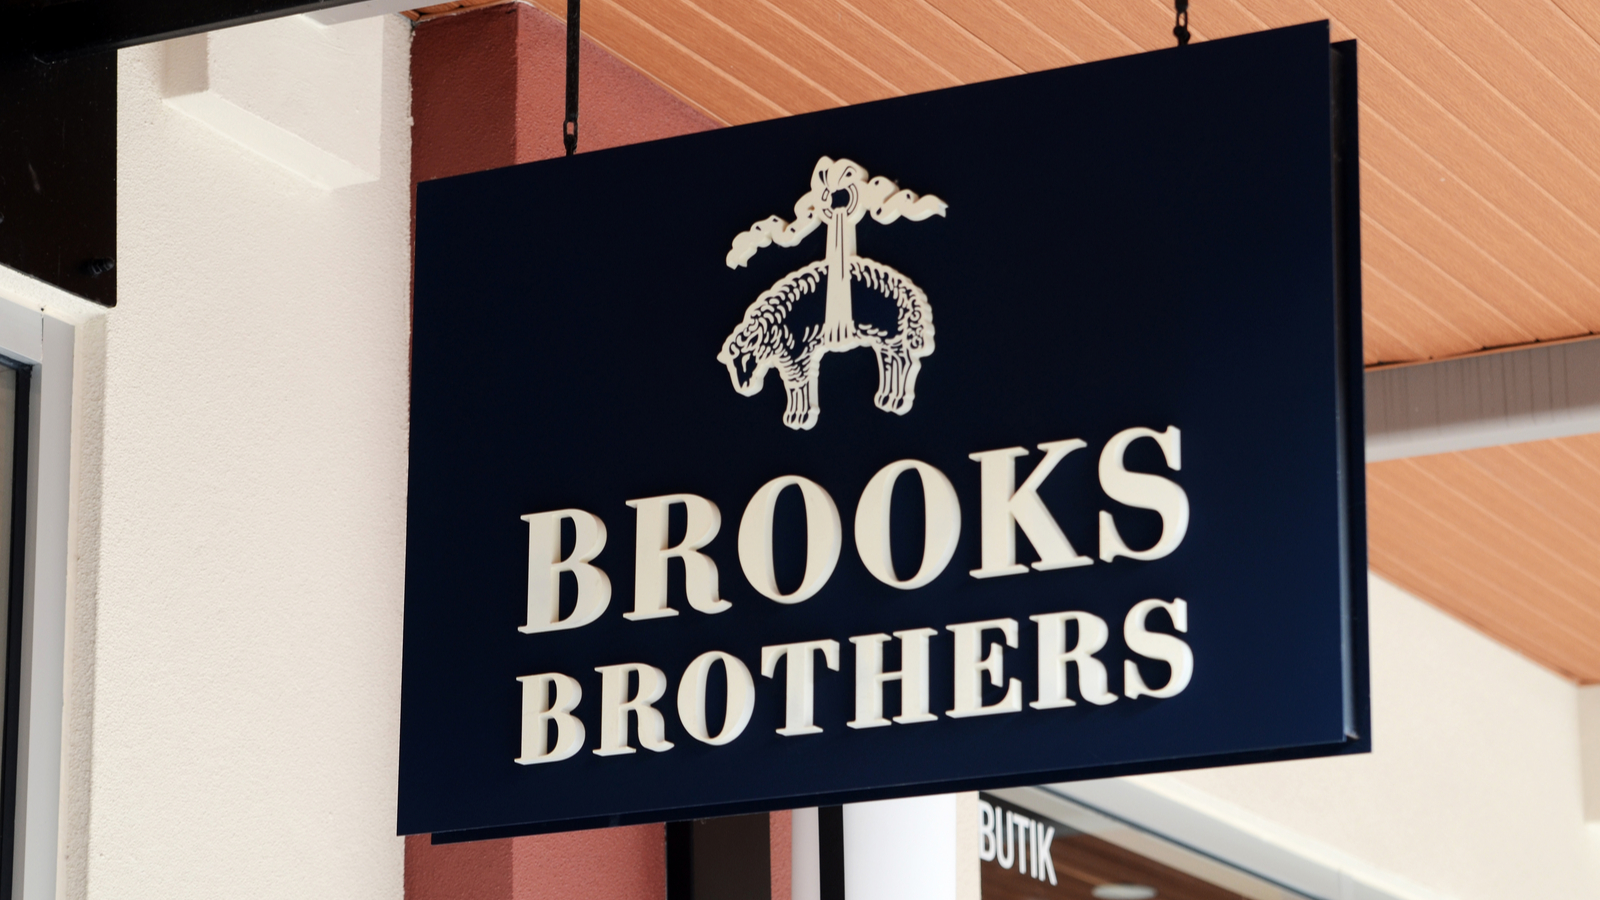 Brooks Brothers Bankruptcy: 9 Things to Know About the Iconic Retailer's Plans